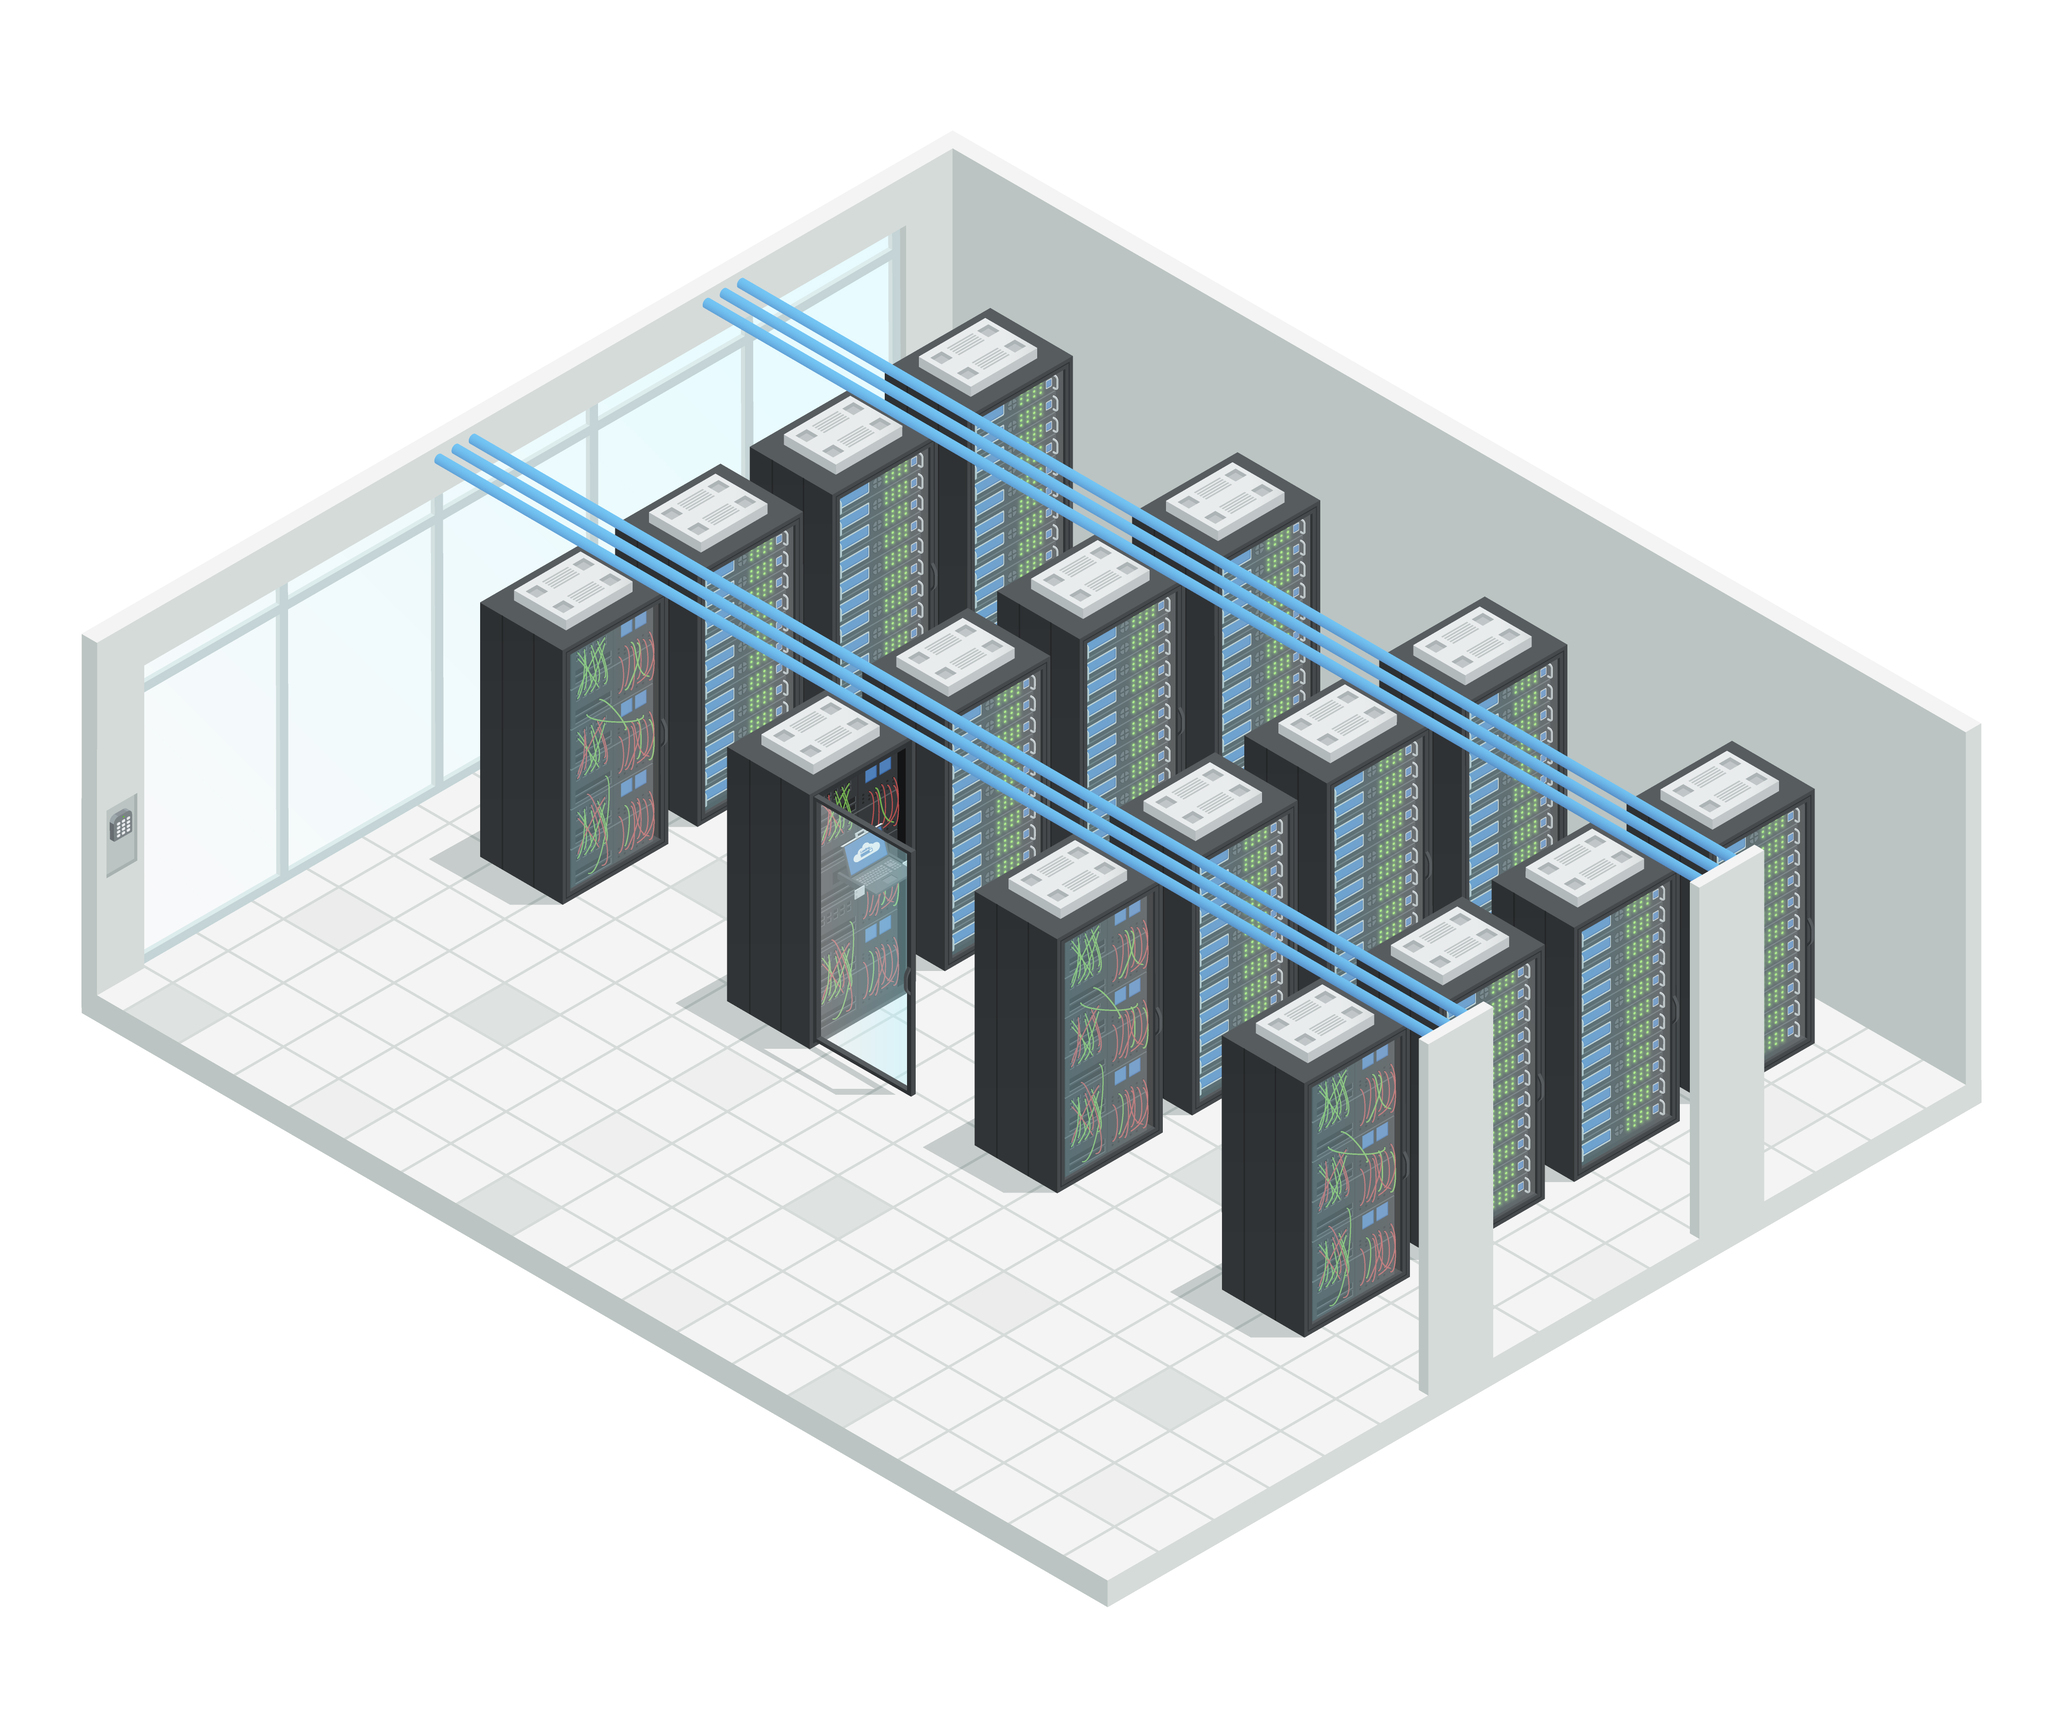 Server Room Isometric Interior